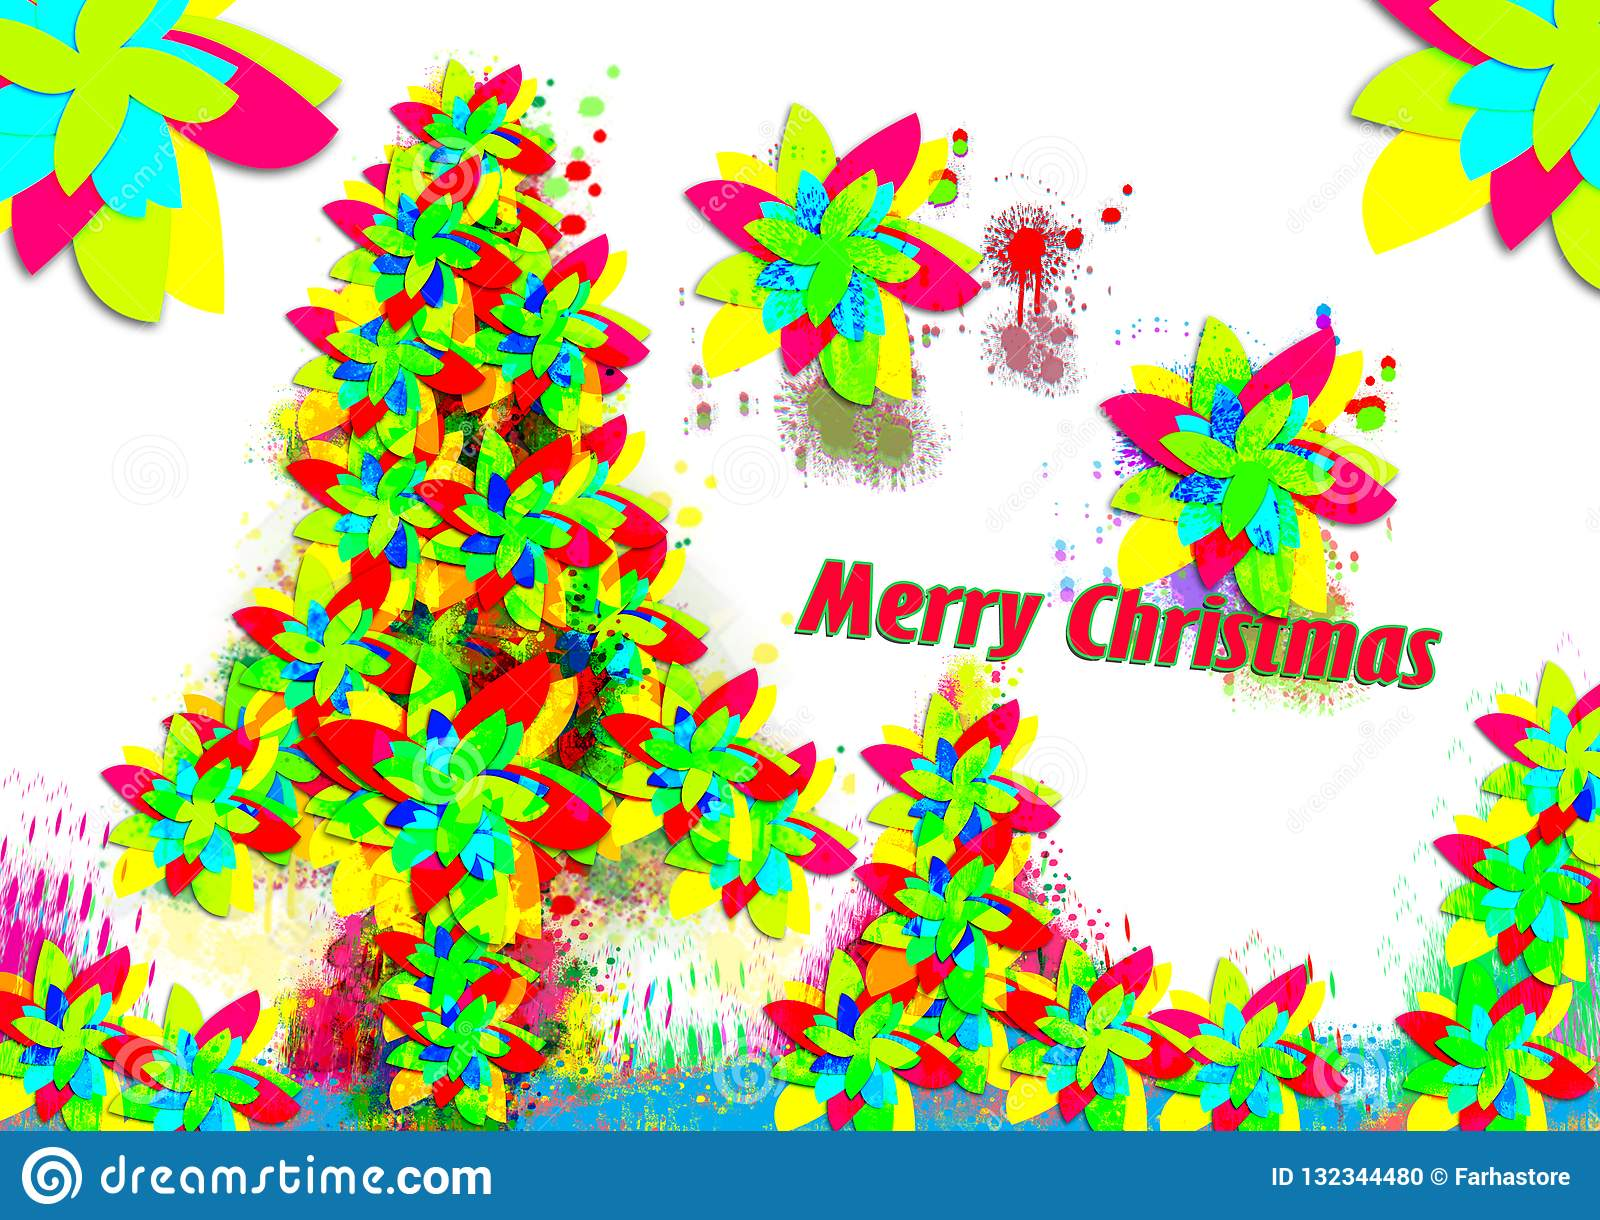 Colorful Christmas Background Design.Colorful Merry Christmas Background Stock Illustration